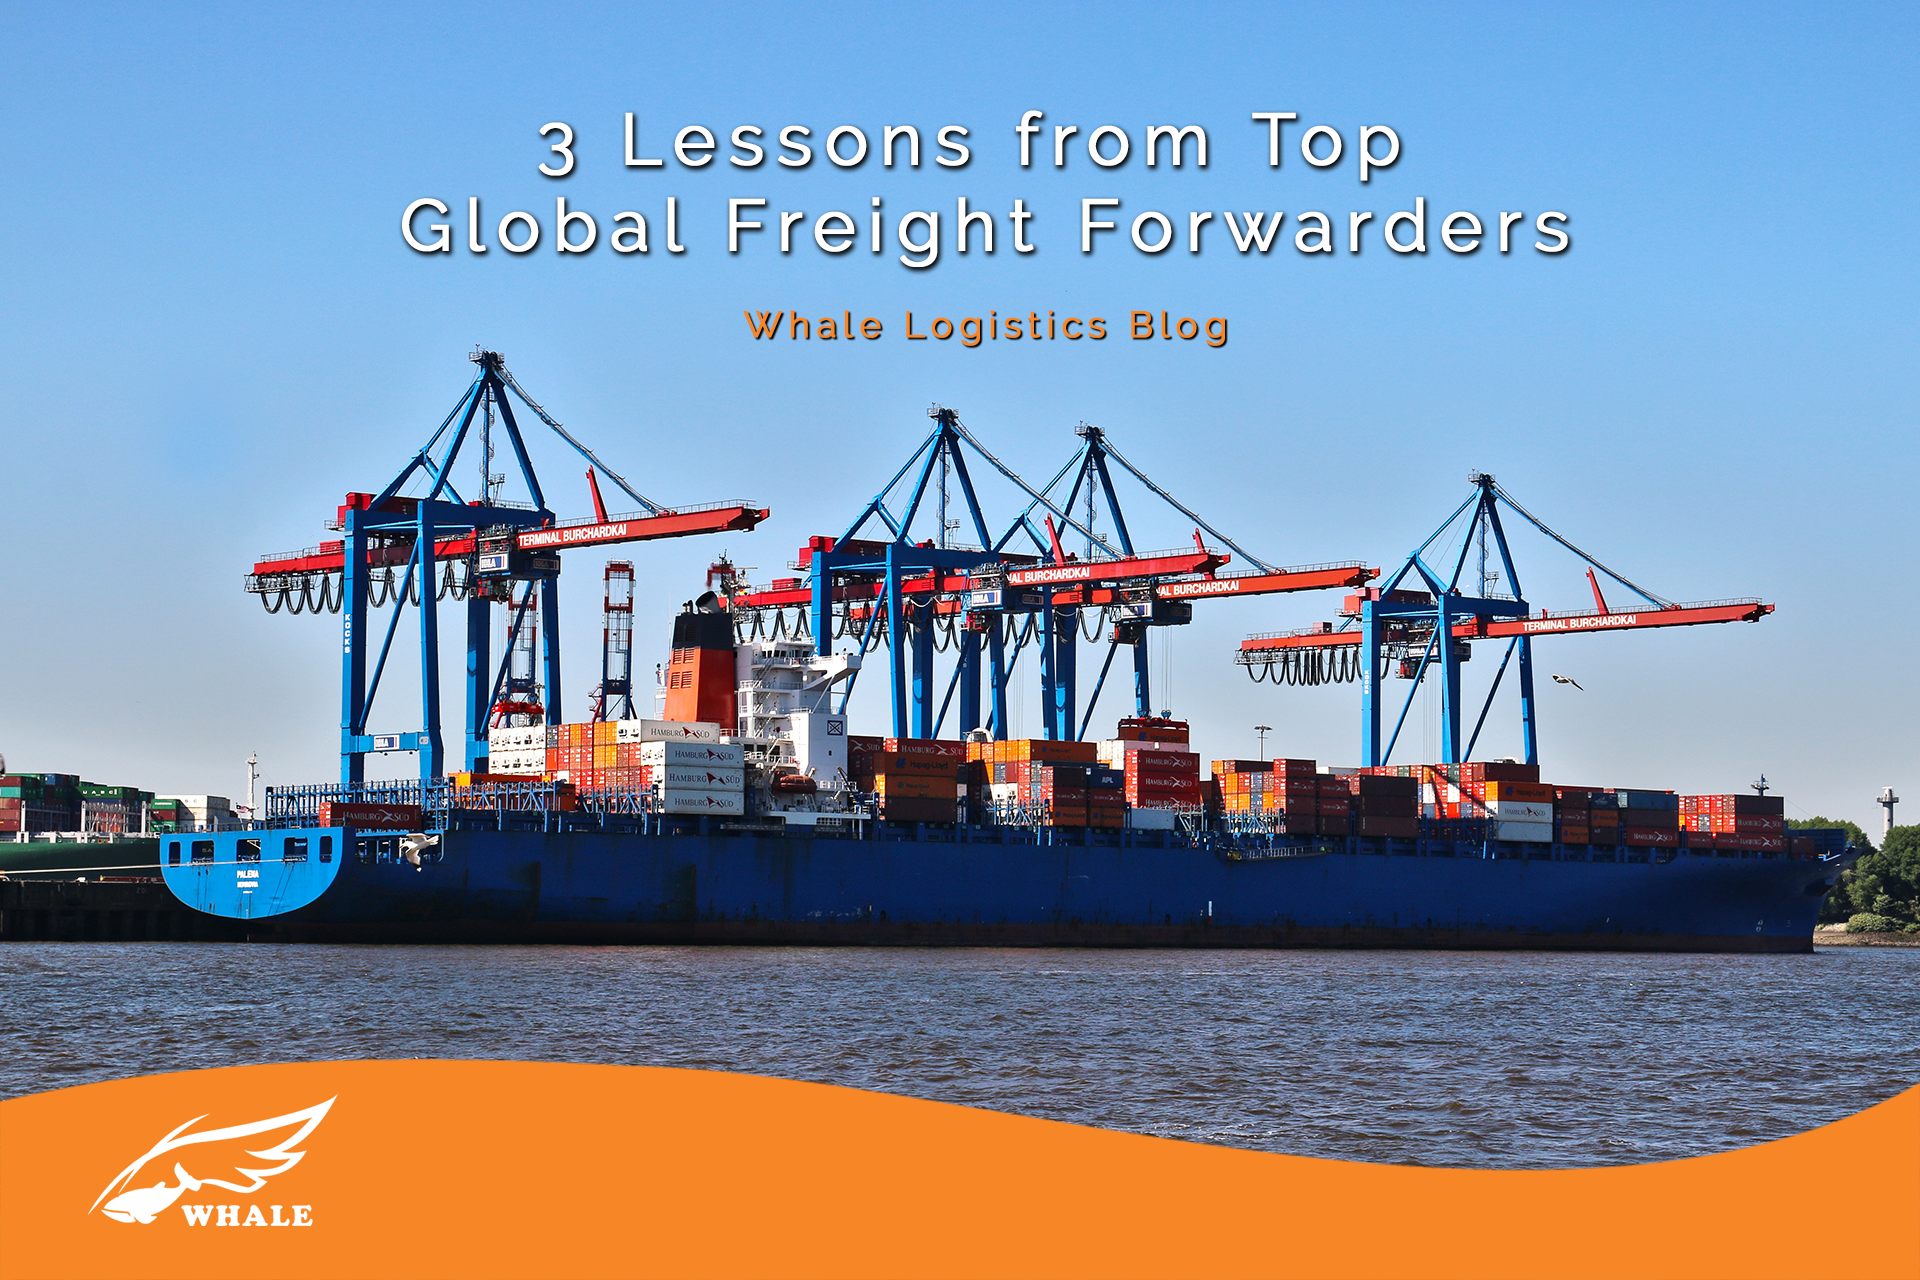 3 Lessons from Top Global Freight Forwarders | Whale Logistics Blog